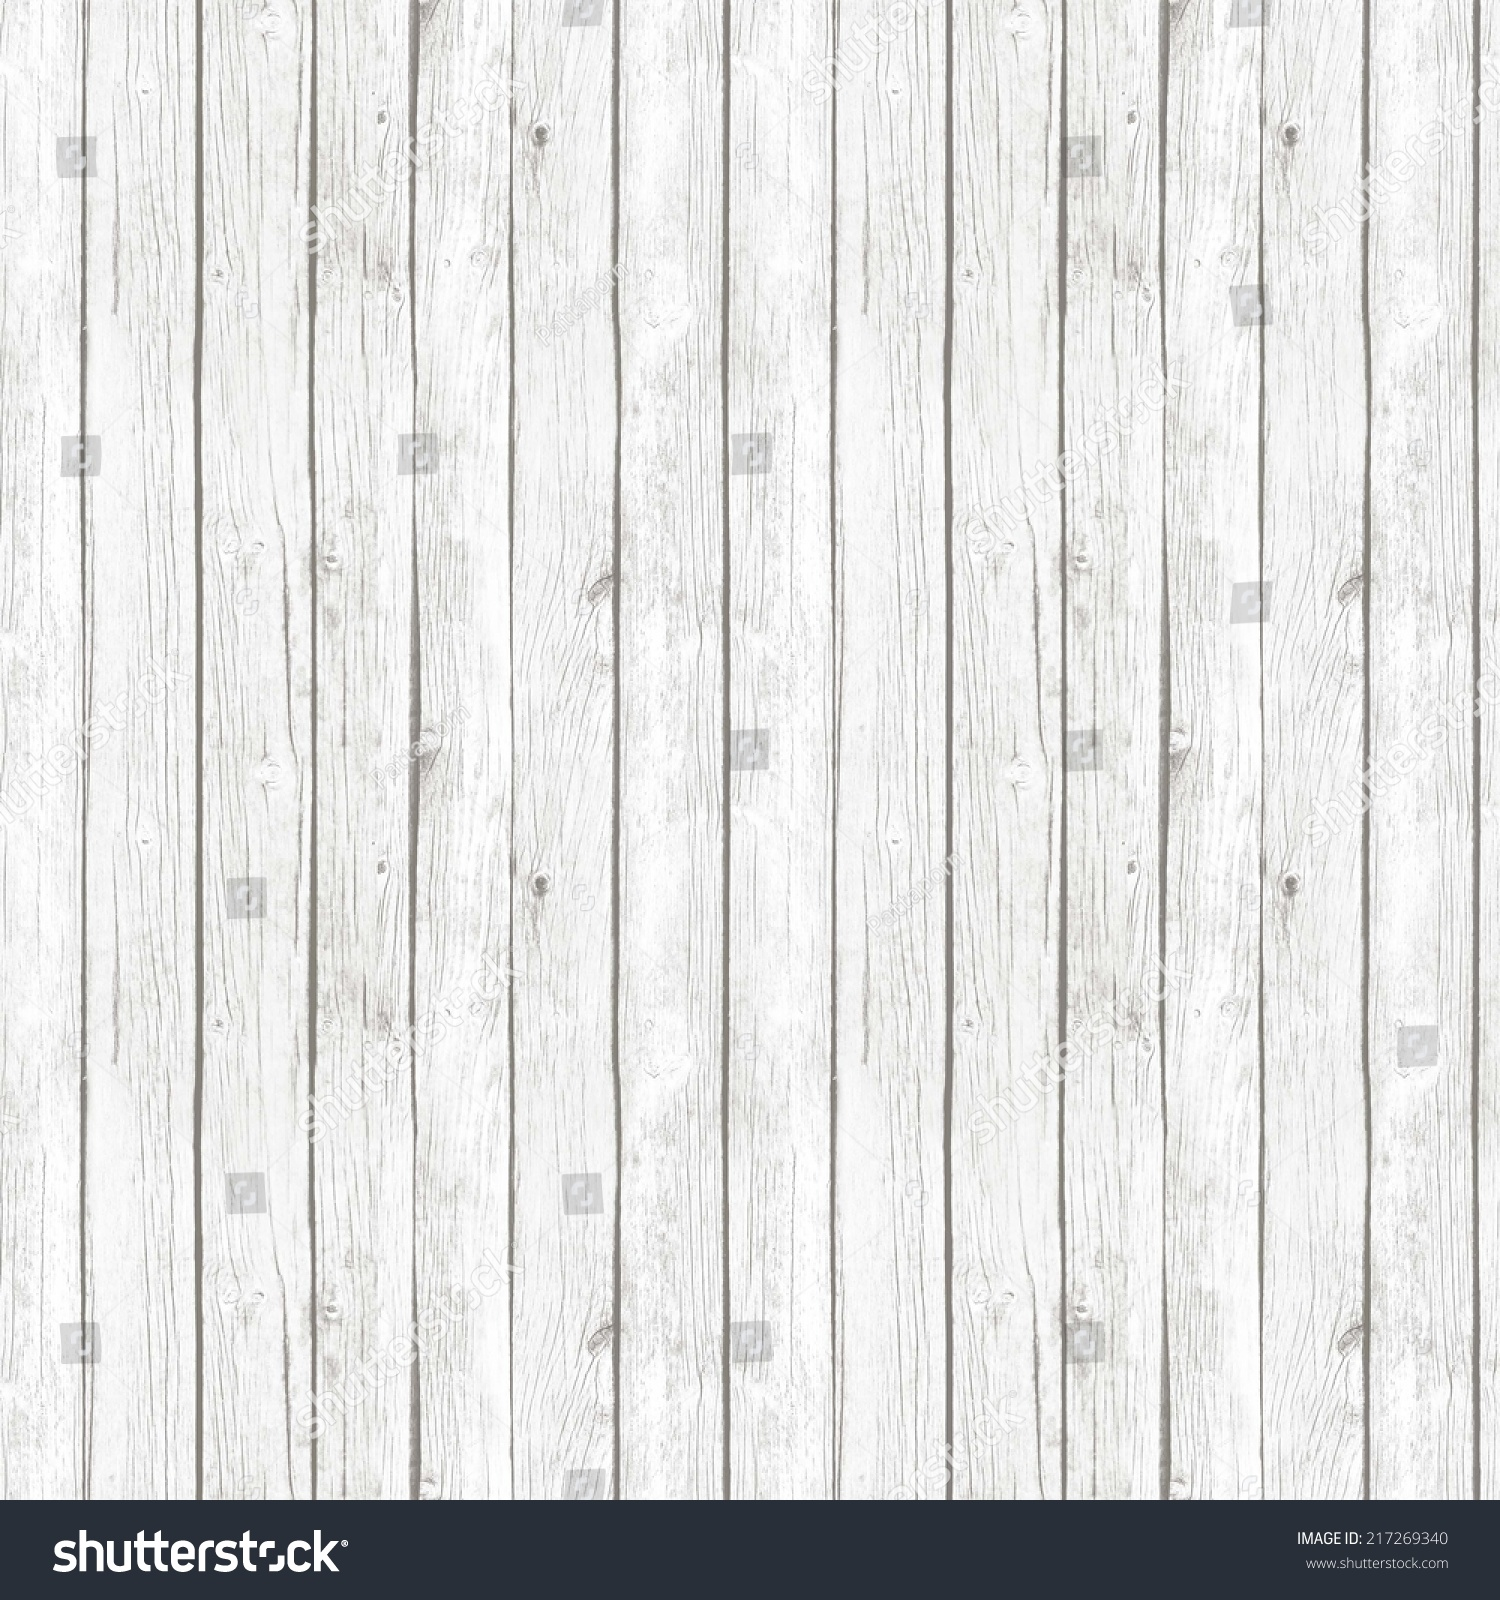 Scrapbook paper wood grain - Digital Paper For Scrapbooking White Wood Texture Seamless